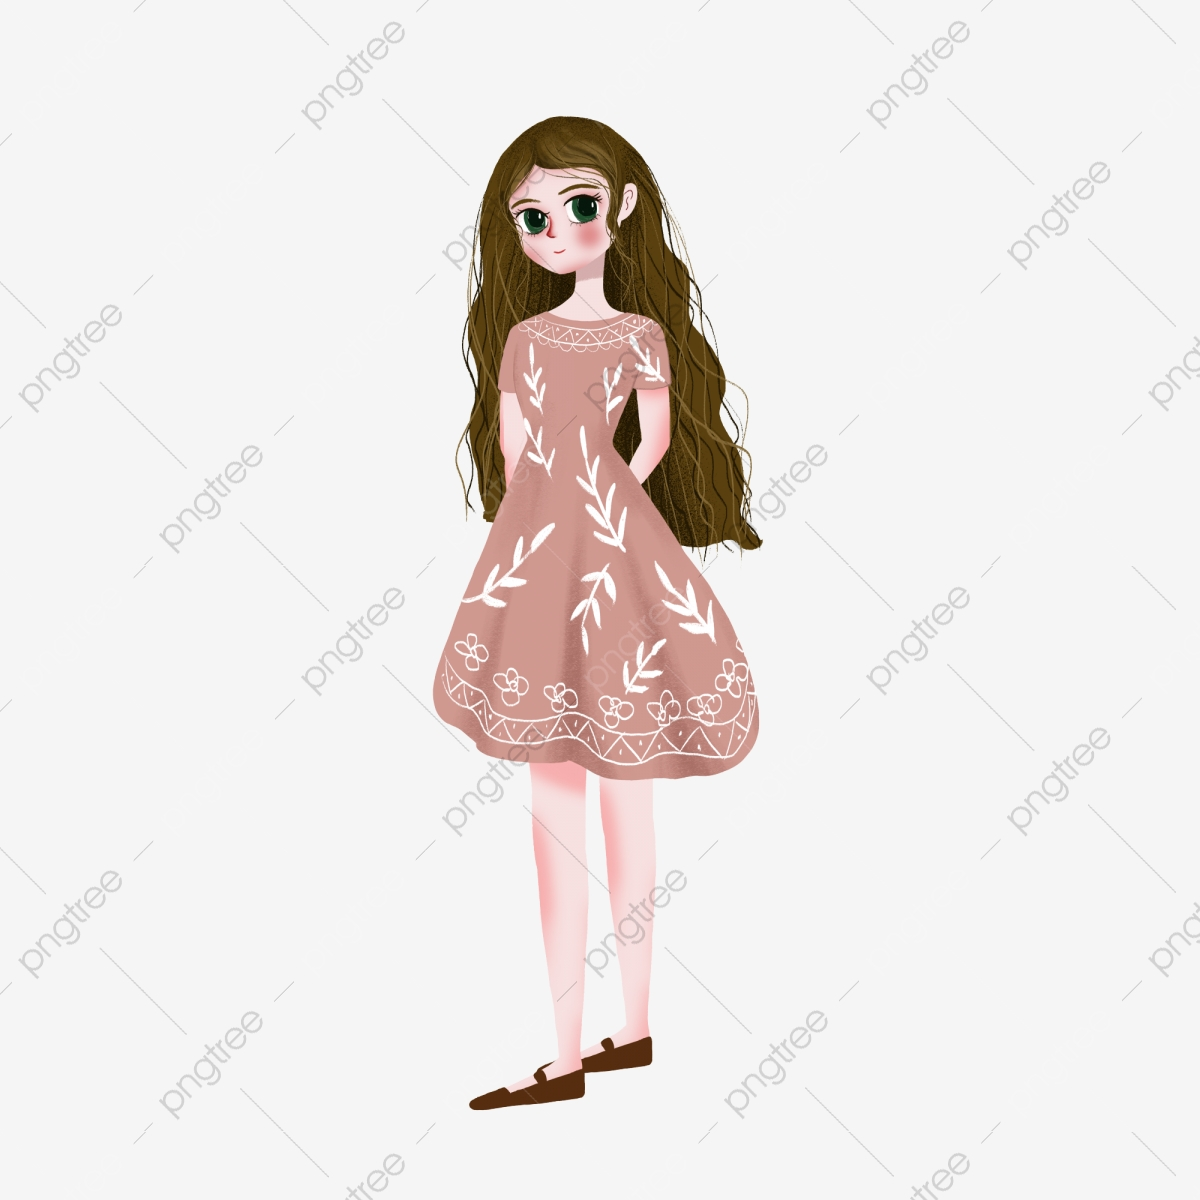 Korean Girl Png Images Vector And Psd Files Free Download On